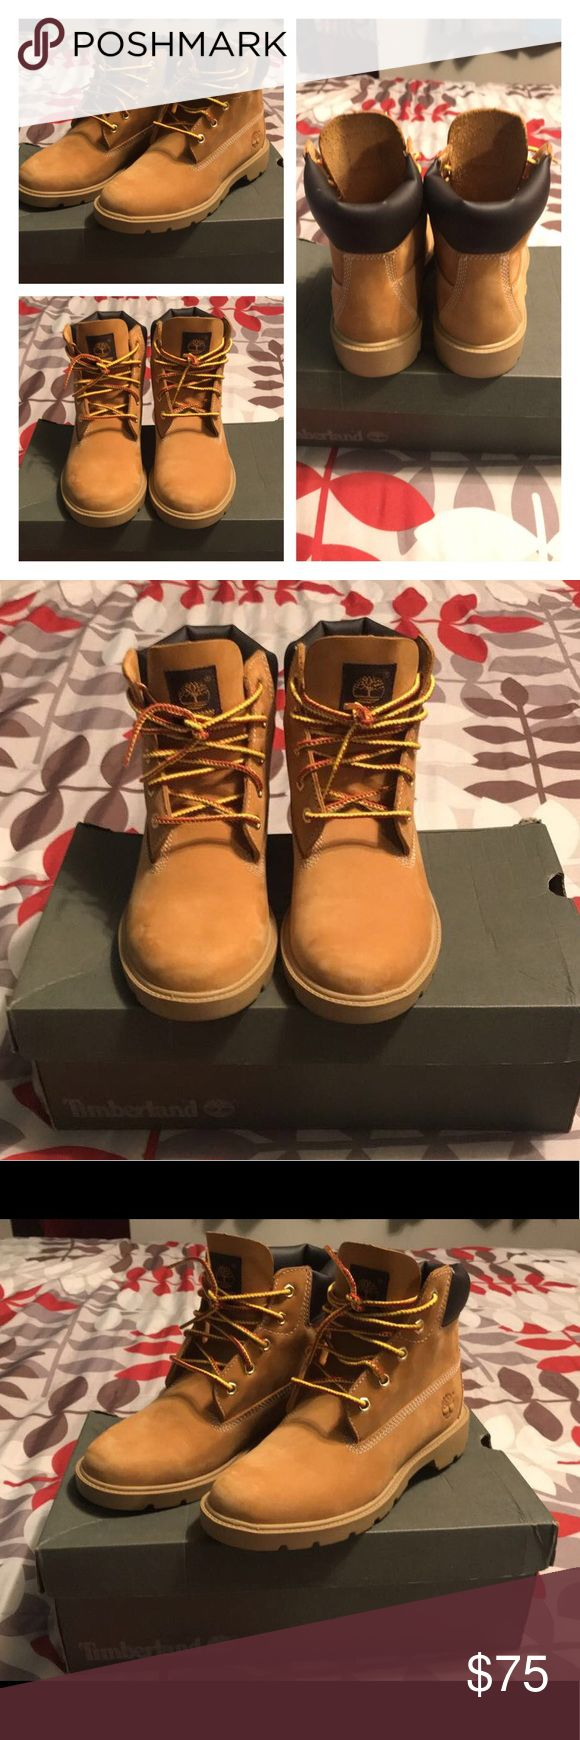 Timberland Boots - Authentic I wore these boots twice (few hours if that). They are too small for me, was planning on giving them to my daughter but they are too small for her as well. Perfect condition. 4.5 in boys but fit a 6.5 in girls Timberland Shoes